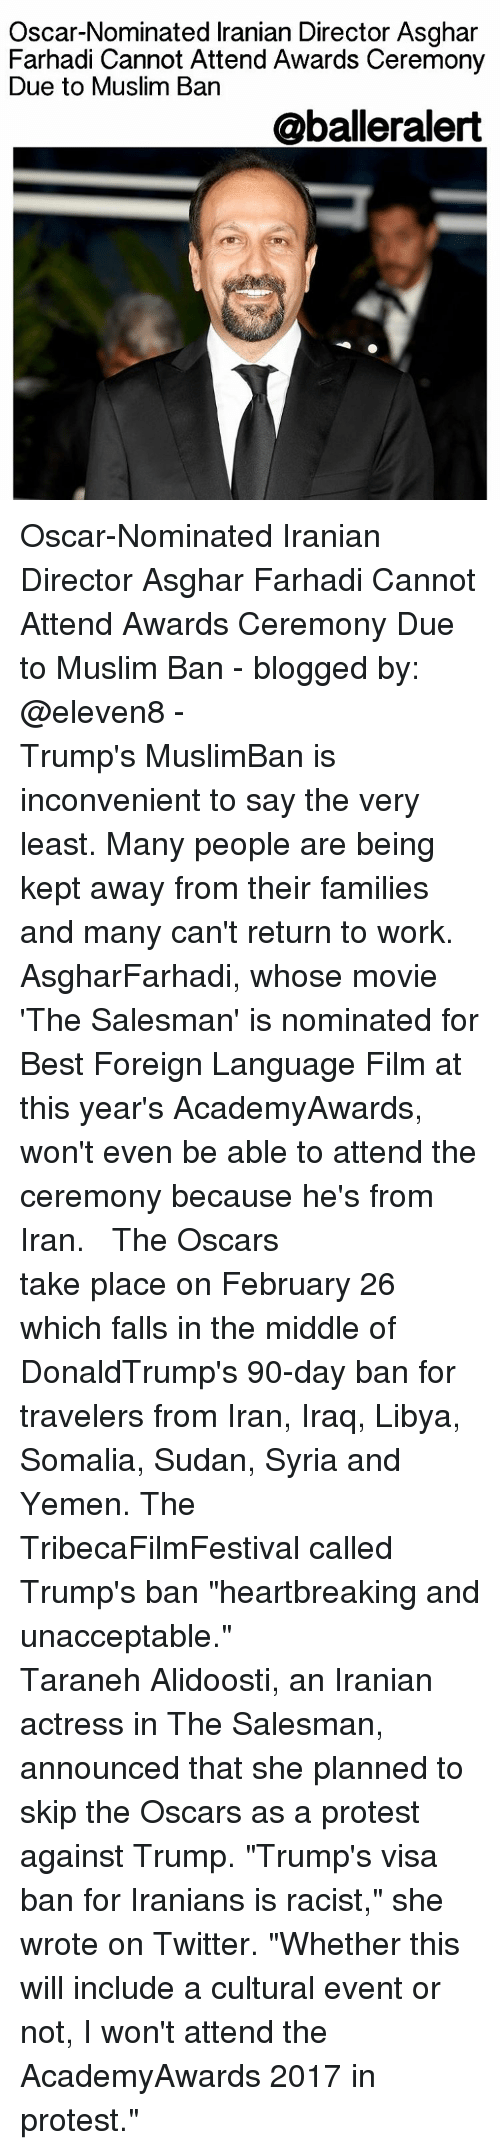 "Oscar Nominations: Oscar-Nominated lranian Director Asghar  Farhadi Cannot Attend Awards Ceremony  Due to Muslim Ban  @balleralert Oscar-Nominated Iranian Director Asghar Farhadi Cannot Attend Awards Ceremony Due to Muslim Ban - blogged by: @eleven8 - ⠀⠀⠀⠀⠀⠀⠀⠀⠀ ⠀⠀⠀⠀⠀⠀⠀⠀⠀ Trump's MuslimBan is inconvenient to say the very least. Many people are being kept away from their families and many can't return to work. AsgharFarhadi, whose movie 'The Salesman' is nominated for Best Foreign Language Film at this year's AcademyAwards, won't even be able to attend the ceremony because he's from Iran. ⠀⠀⠀⠀⠀⠀⠀⠀⠀ ⠀⠀⠀⠀⠀⠀⠀⠀⠀ The Oscars take place on February 26 which falls in the middle of DonaldTrump's 90-day ban for travelers from Iran, Iraq, Libya, Somalia, Sudan, Syria and Yemen. The TribecaFilmFestival called Trump's ban ""heartbreaking and unacceptable."" ⠀⠀⠀⠀⠀⠀⠀⠀⠀ ⠀⠀⠀⠀⠀⠀⠀⠀⠀ Taraneh Alidoosti, an Iranian actress in The Salesman, announced that she planned to skip the Oscars as a protest against Trump. ""Trump's visa ban for Iranians is racist,"" she wrote on Twitter. ""Whether this will include a cultural event or not, I won't attend the AcademyAwards 2017 in protest."""